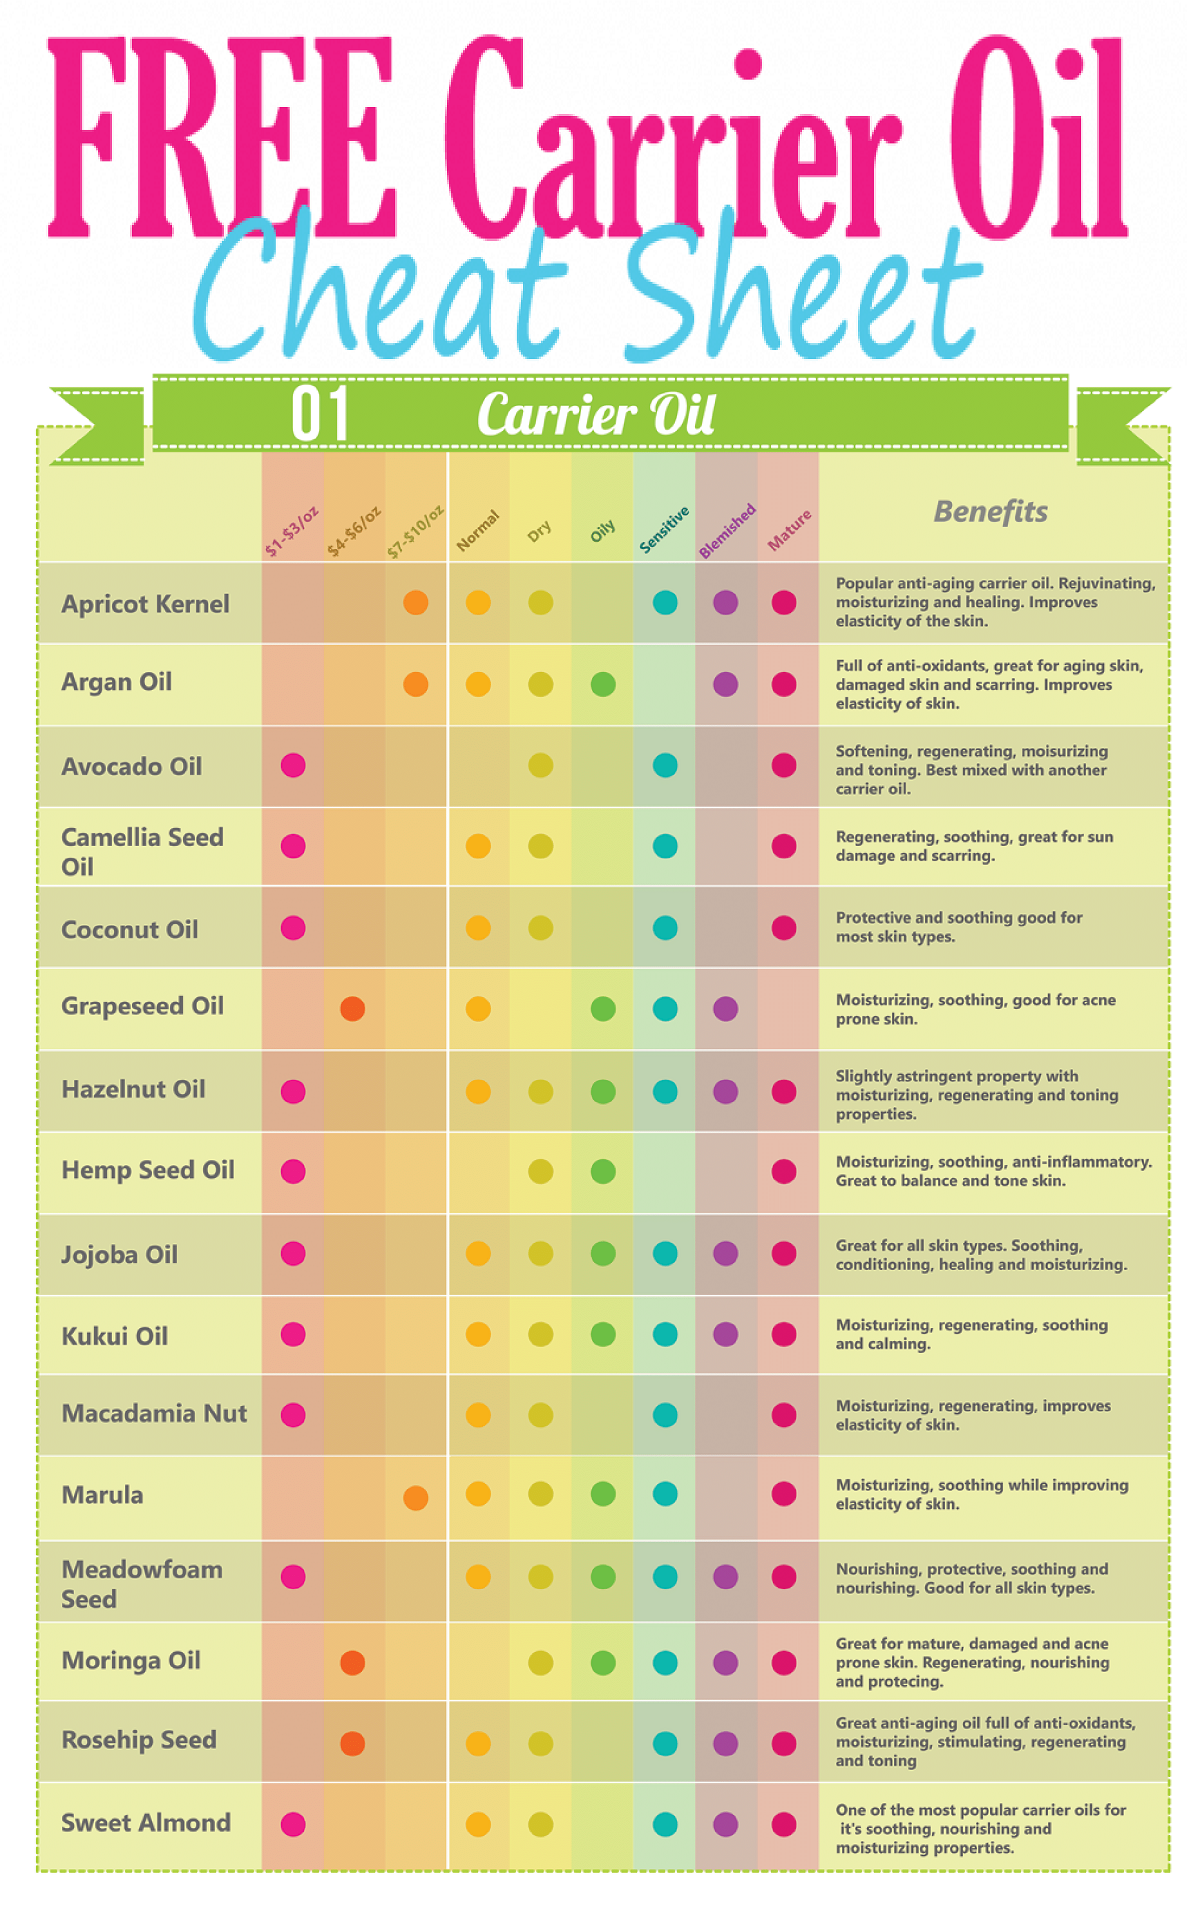 The Best Carrier Oils Cheat Sheet for the Face (Free Printable!)